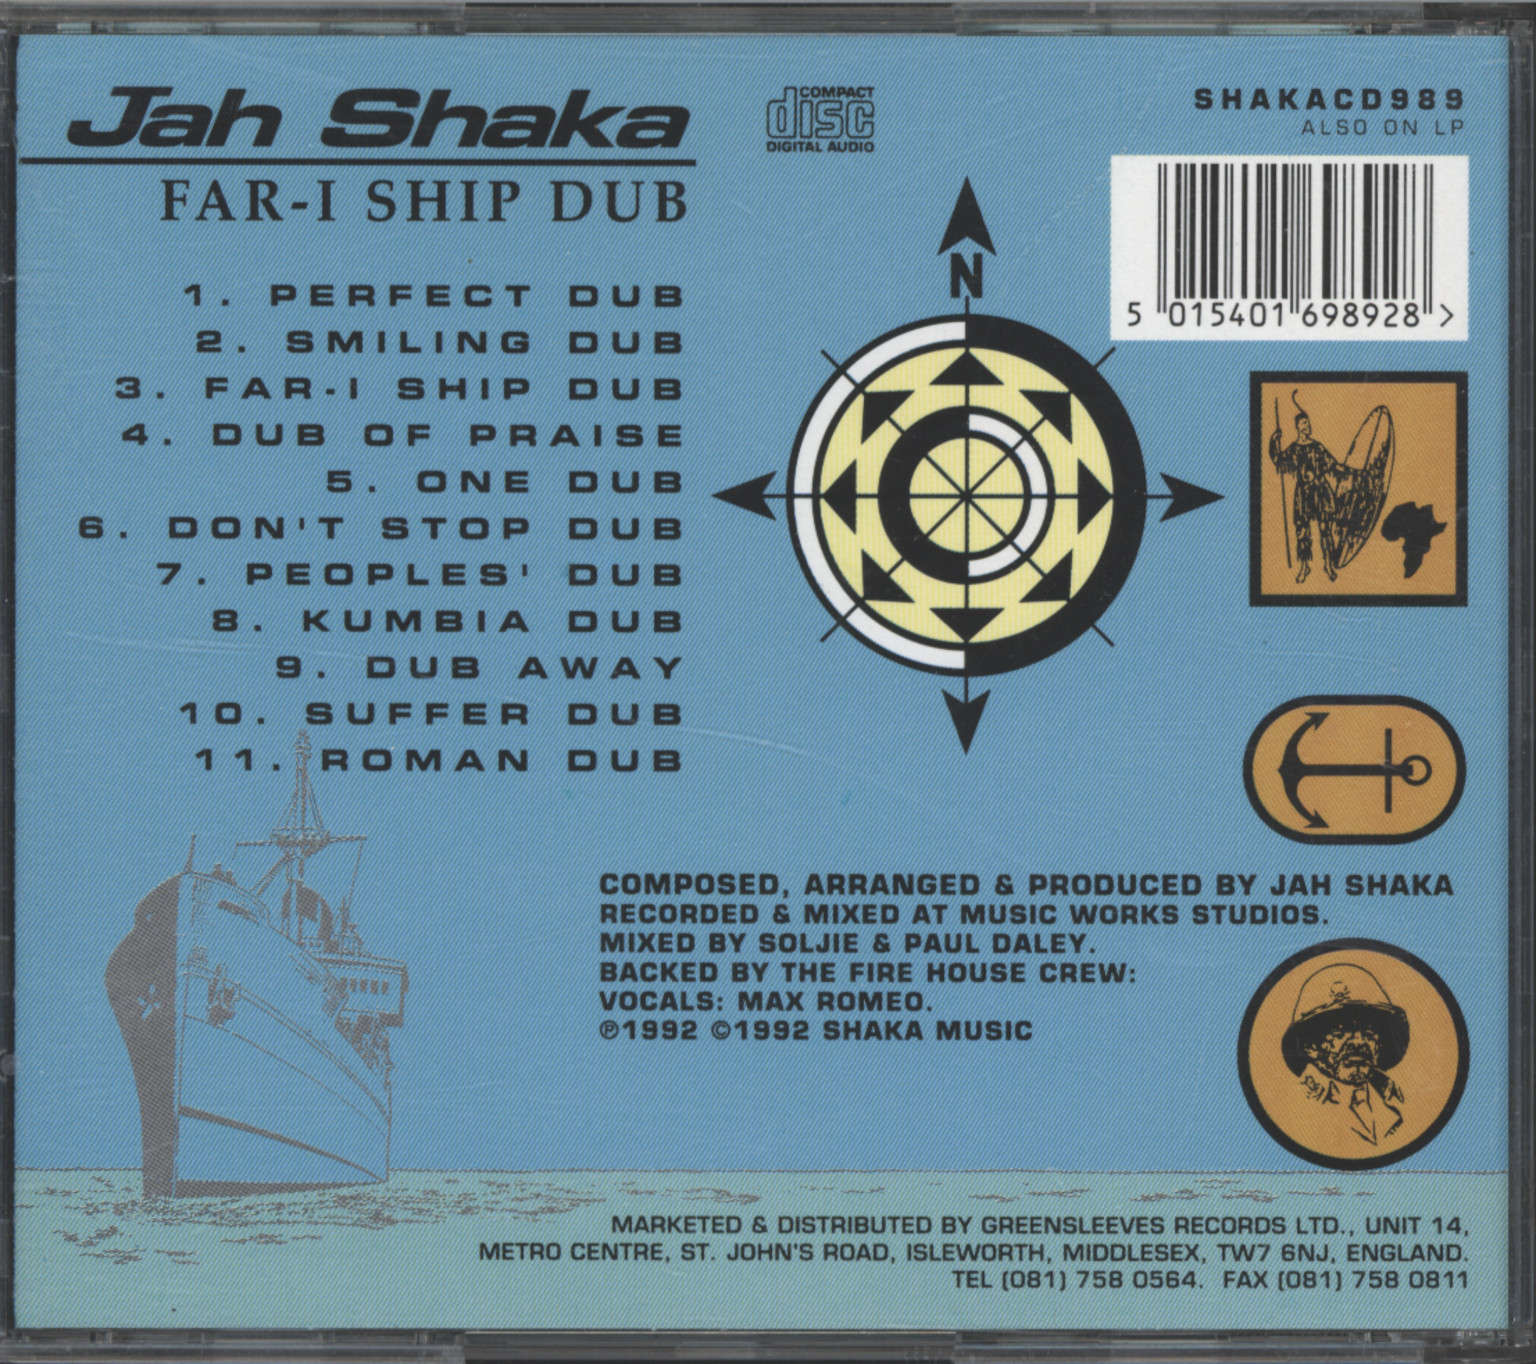 Jah Shaka: Far-I Ship Dub, CD